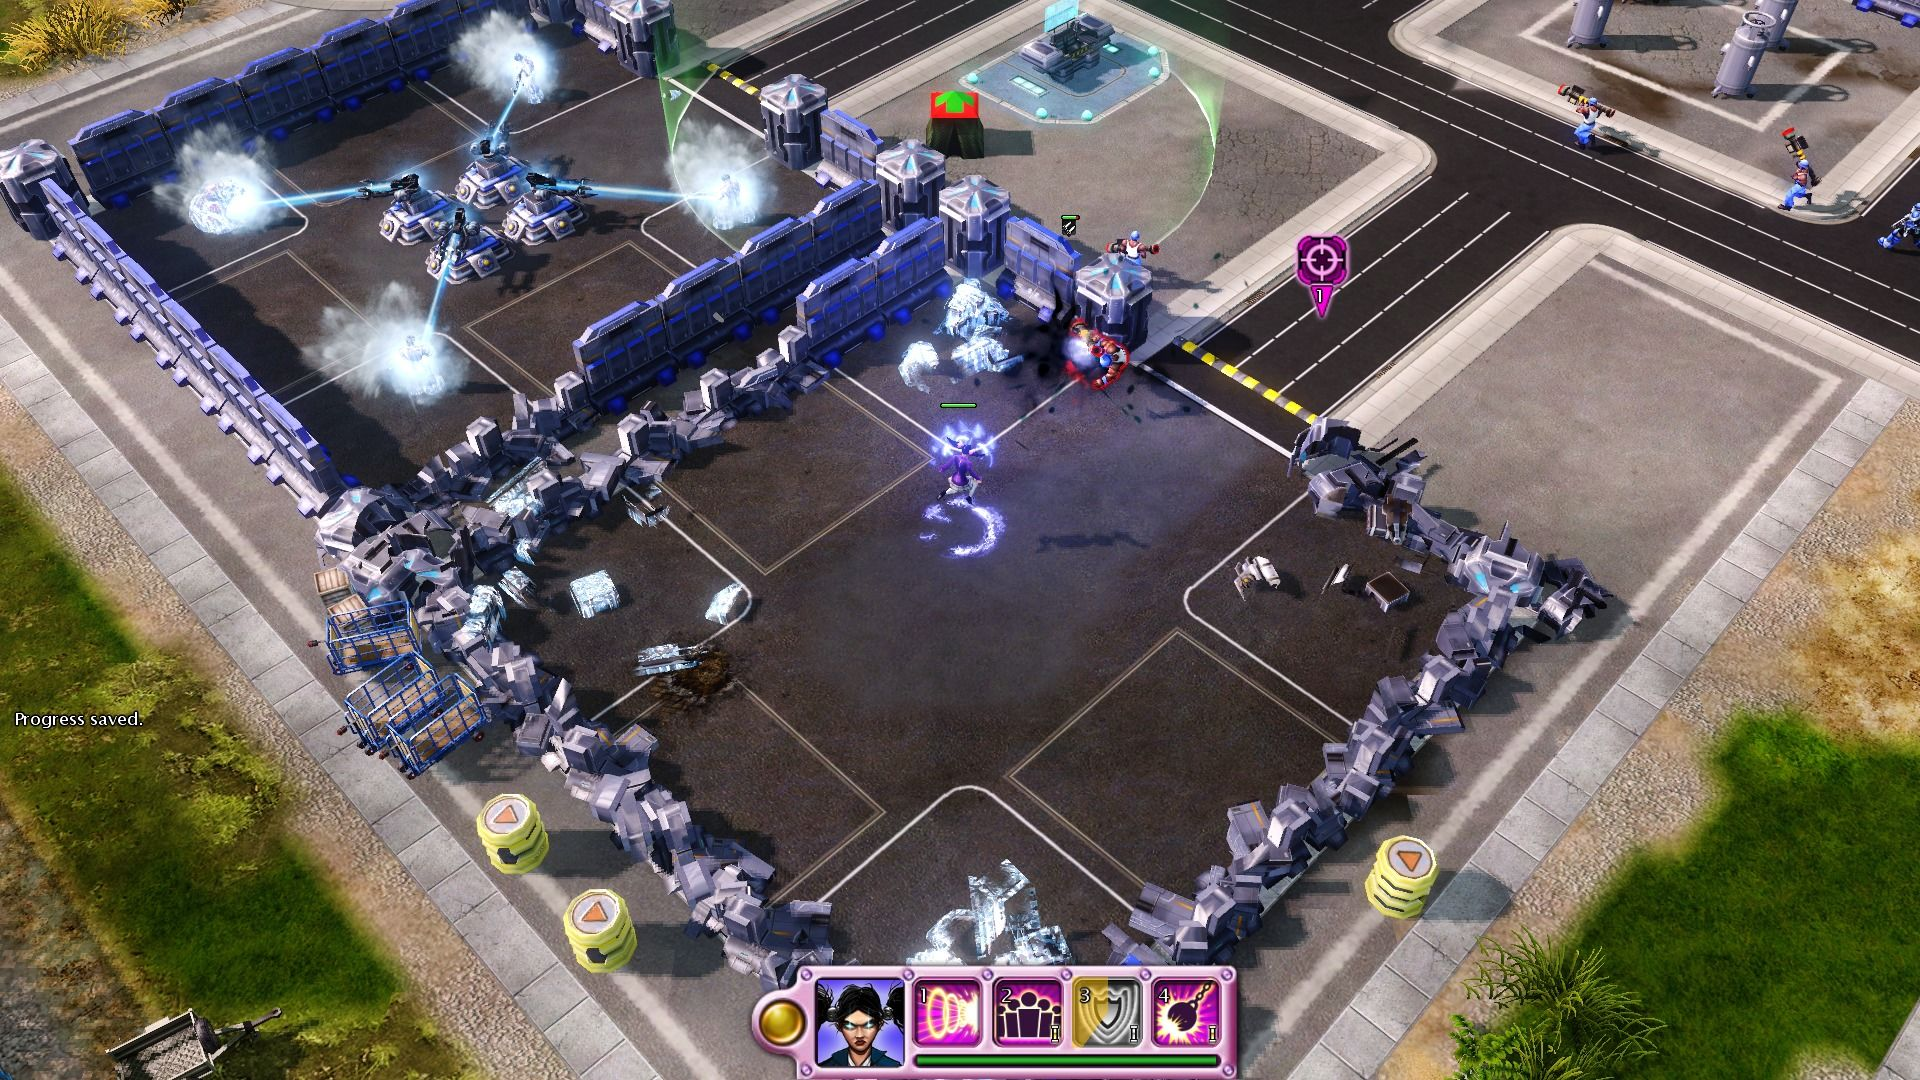 Command & Conquer: Red Alert 3 - Uprising Windows Breaking free... it's time to obliterate this base before proceeding further.